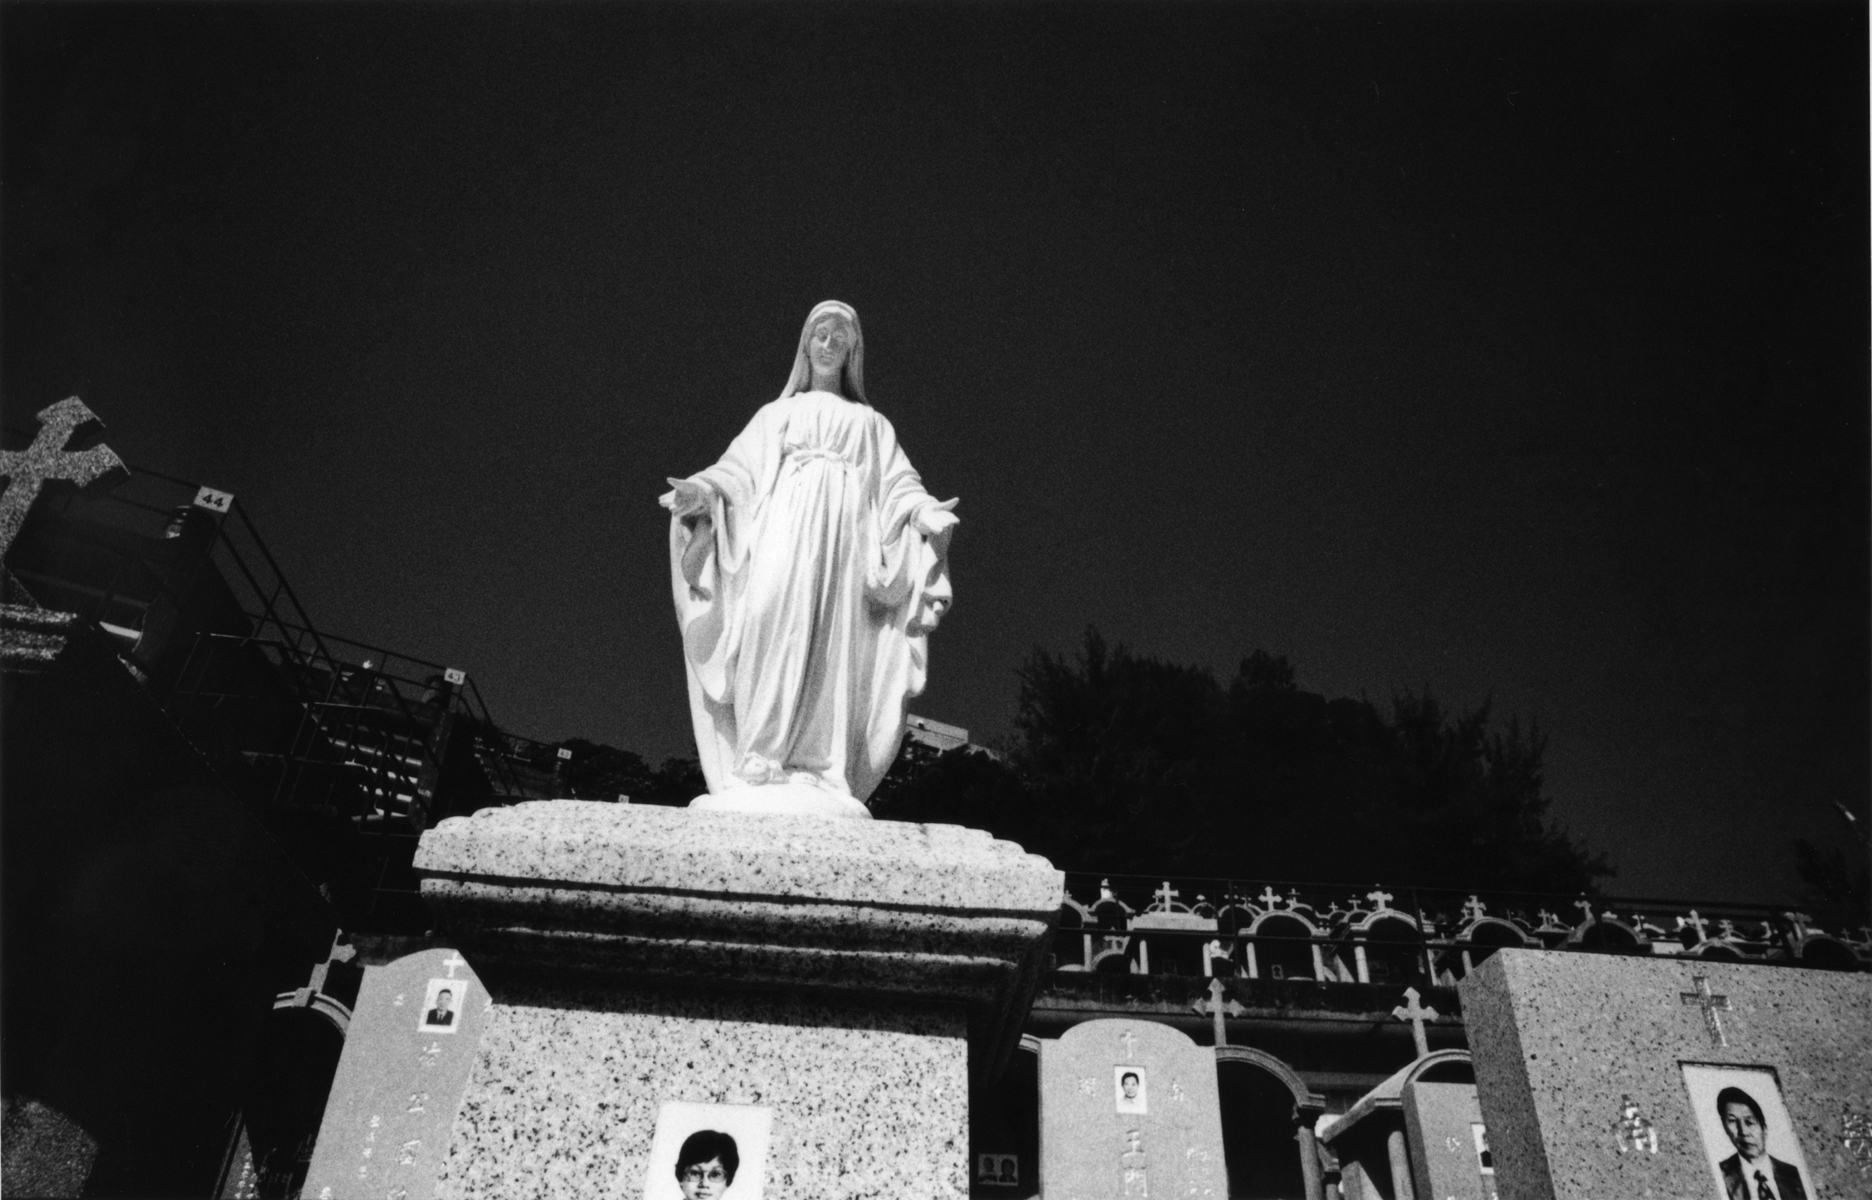 A statue of the Virgin Mary sits on a tomb, overlooking the Cheung Sha Wan Catholic Cemetery. Hong Kong Island